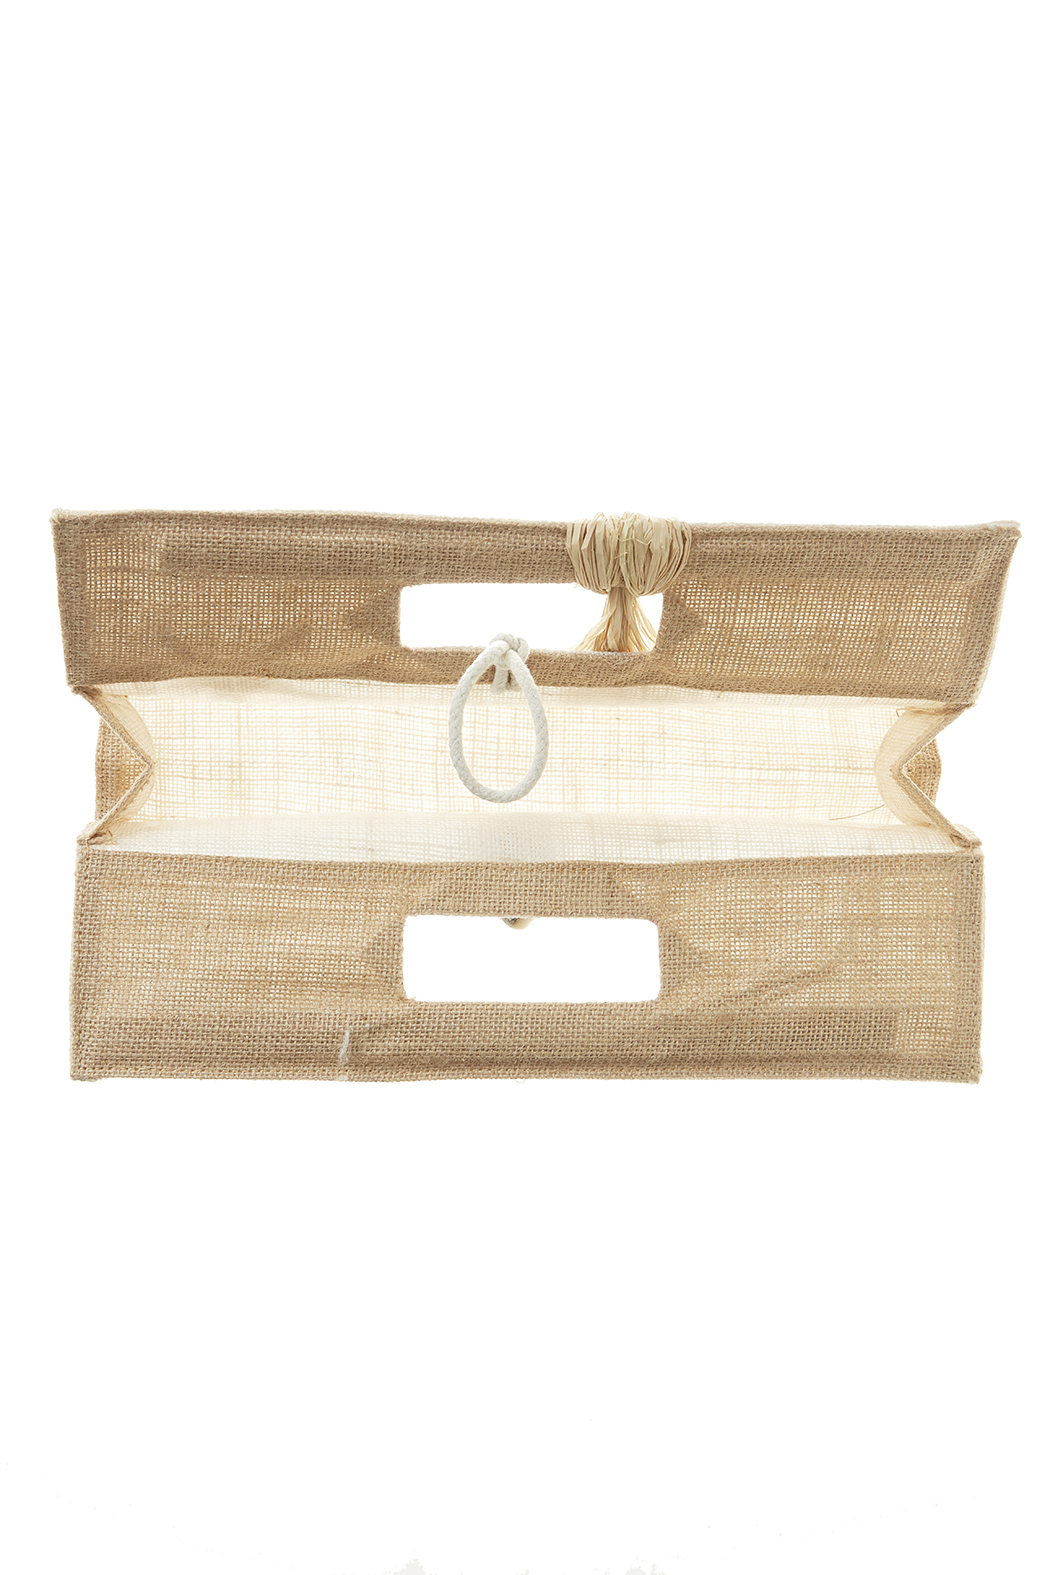 Sandy by the Sea Purse Wine Bag - Front Full Image